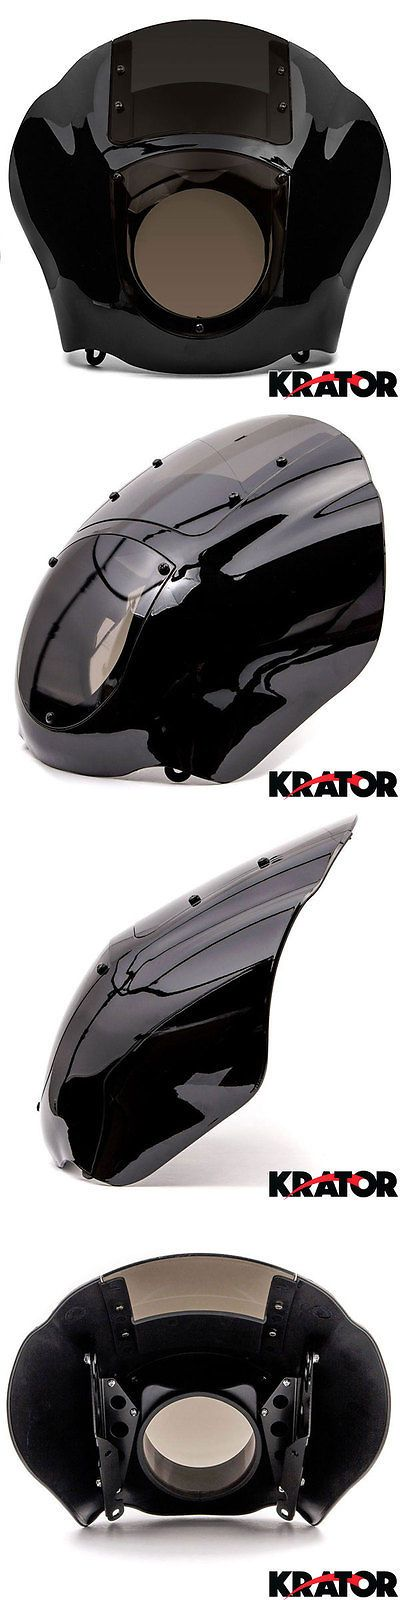 motorcycle parts: Black Front Headlight Fairing Smoke Cowl Mount For Harley Sportster Dyna Fxr Xl -> BUY IT NOW ONLY: $56.83 on eBay!